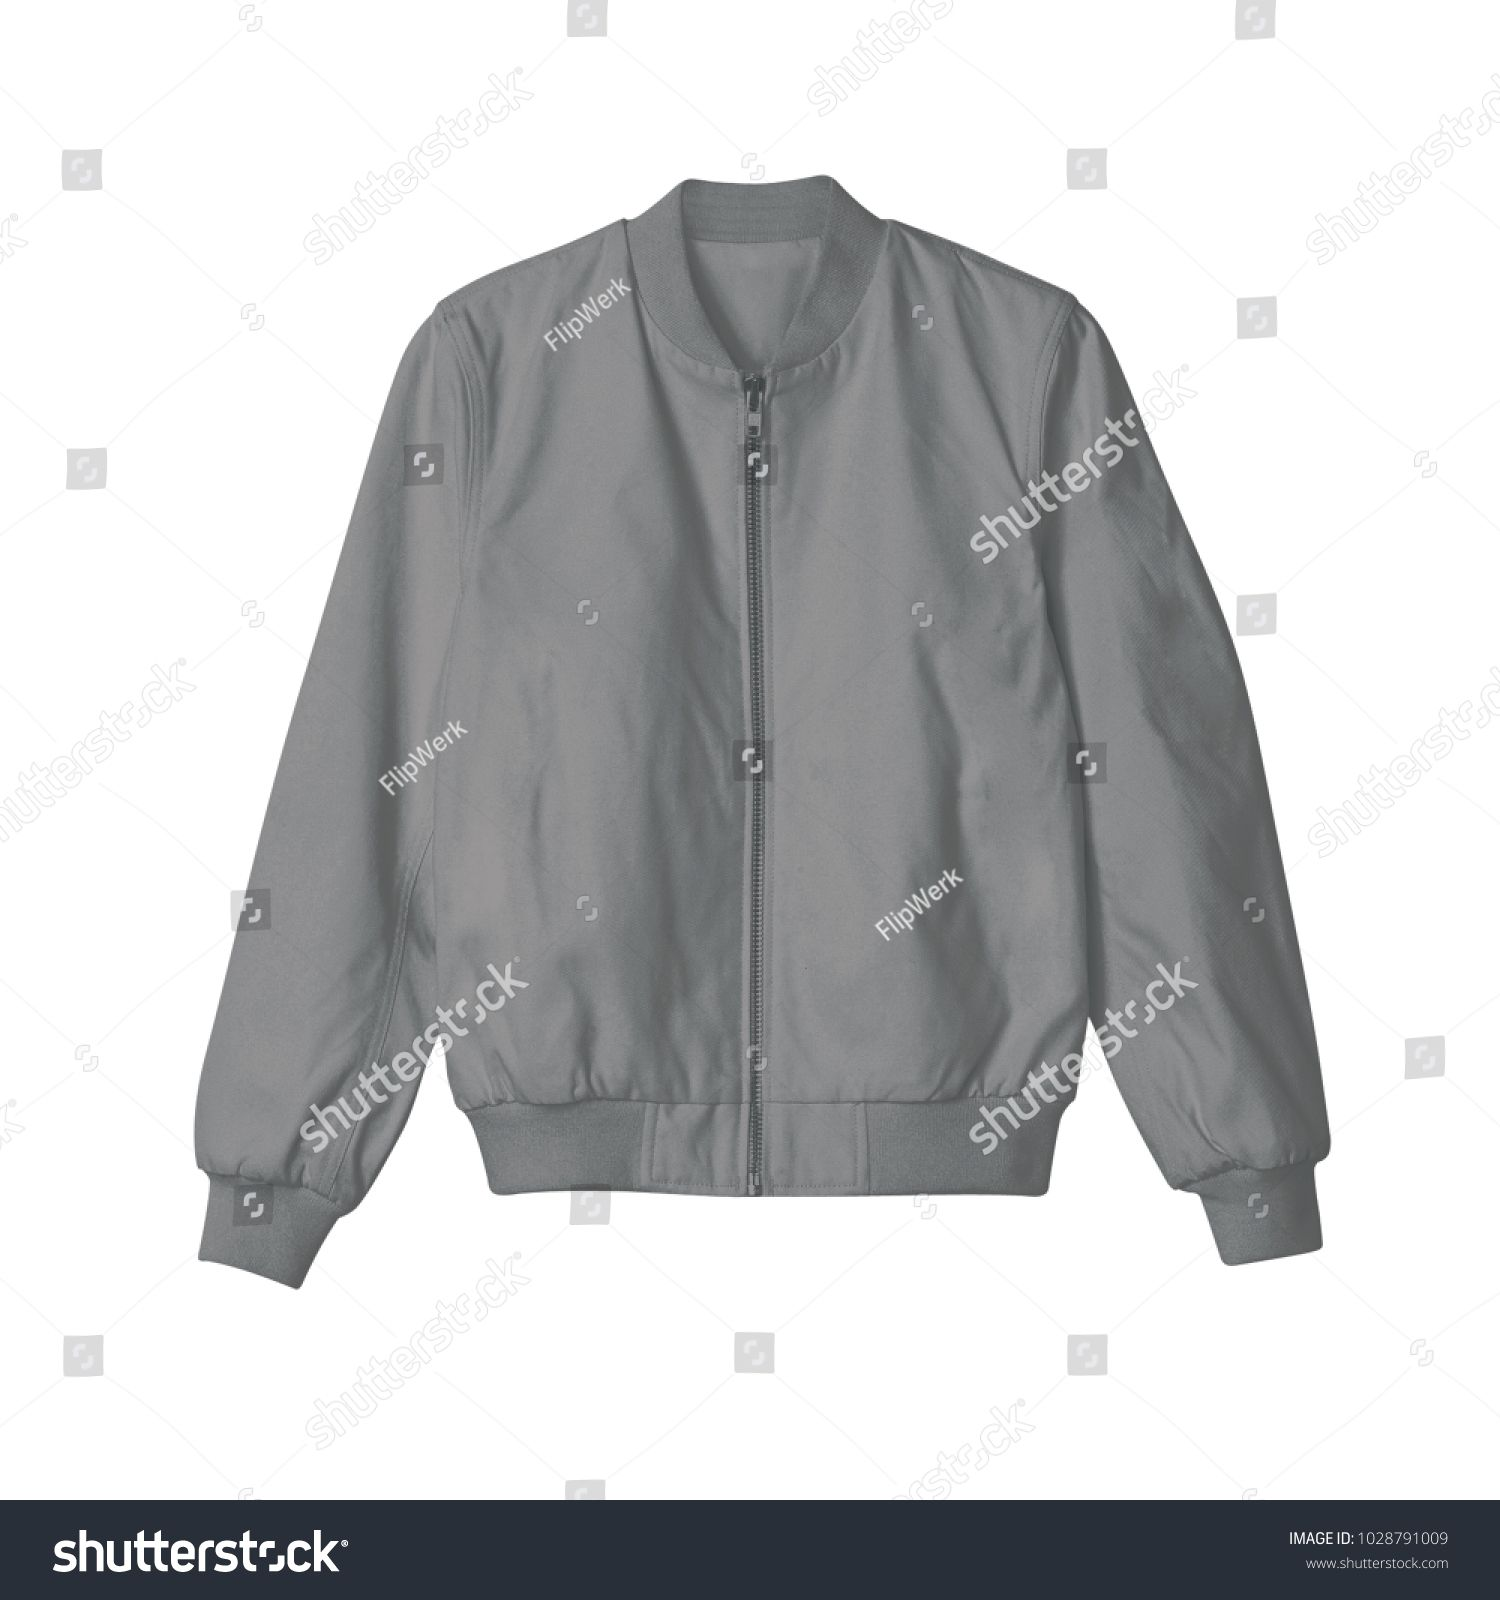 blank jacket bomber black color front view on white